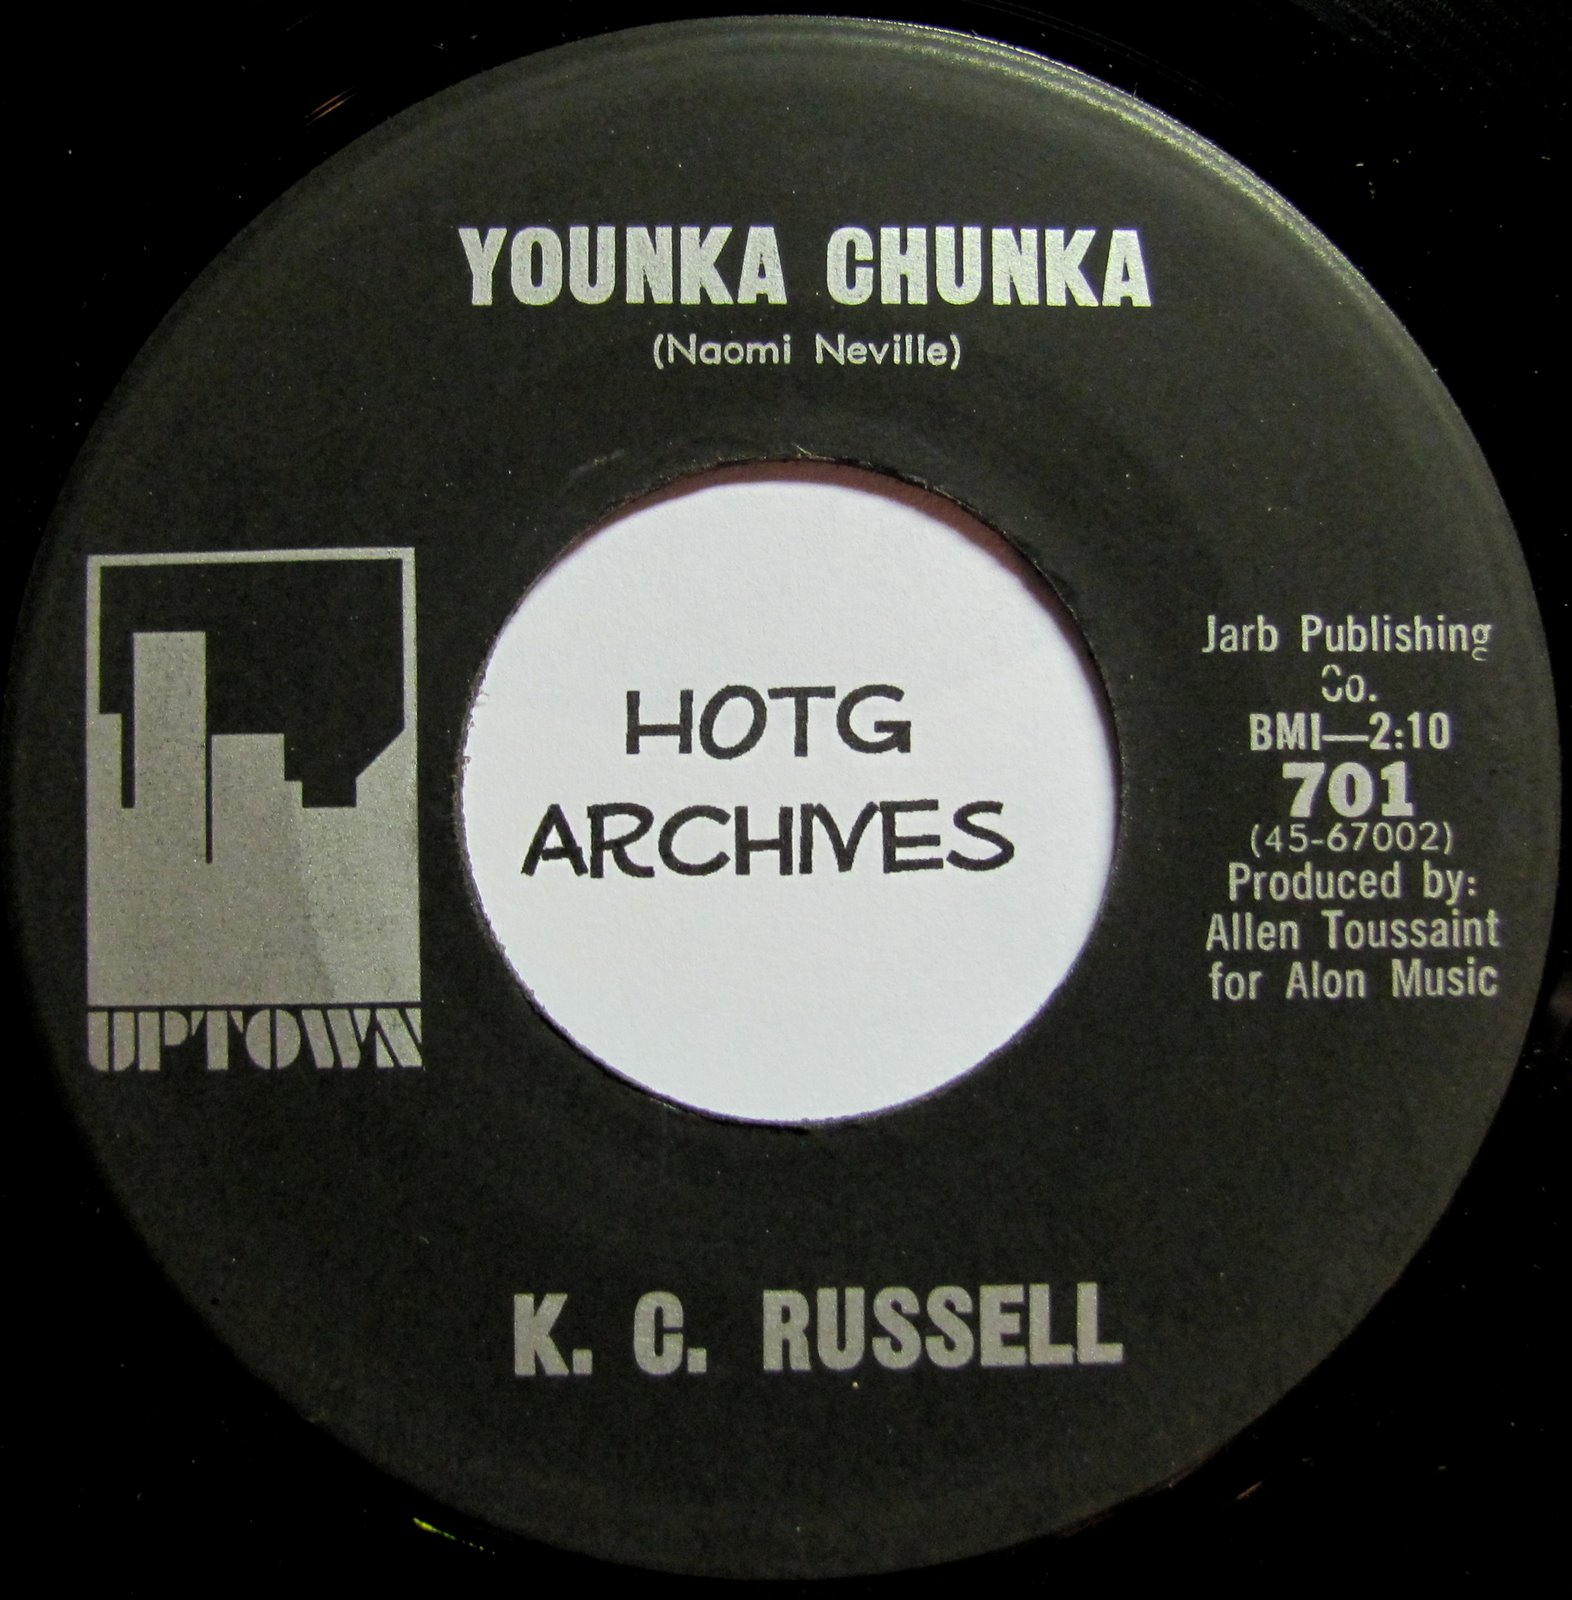 K.C. Russell - Younka Chunka - How Tired I Am